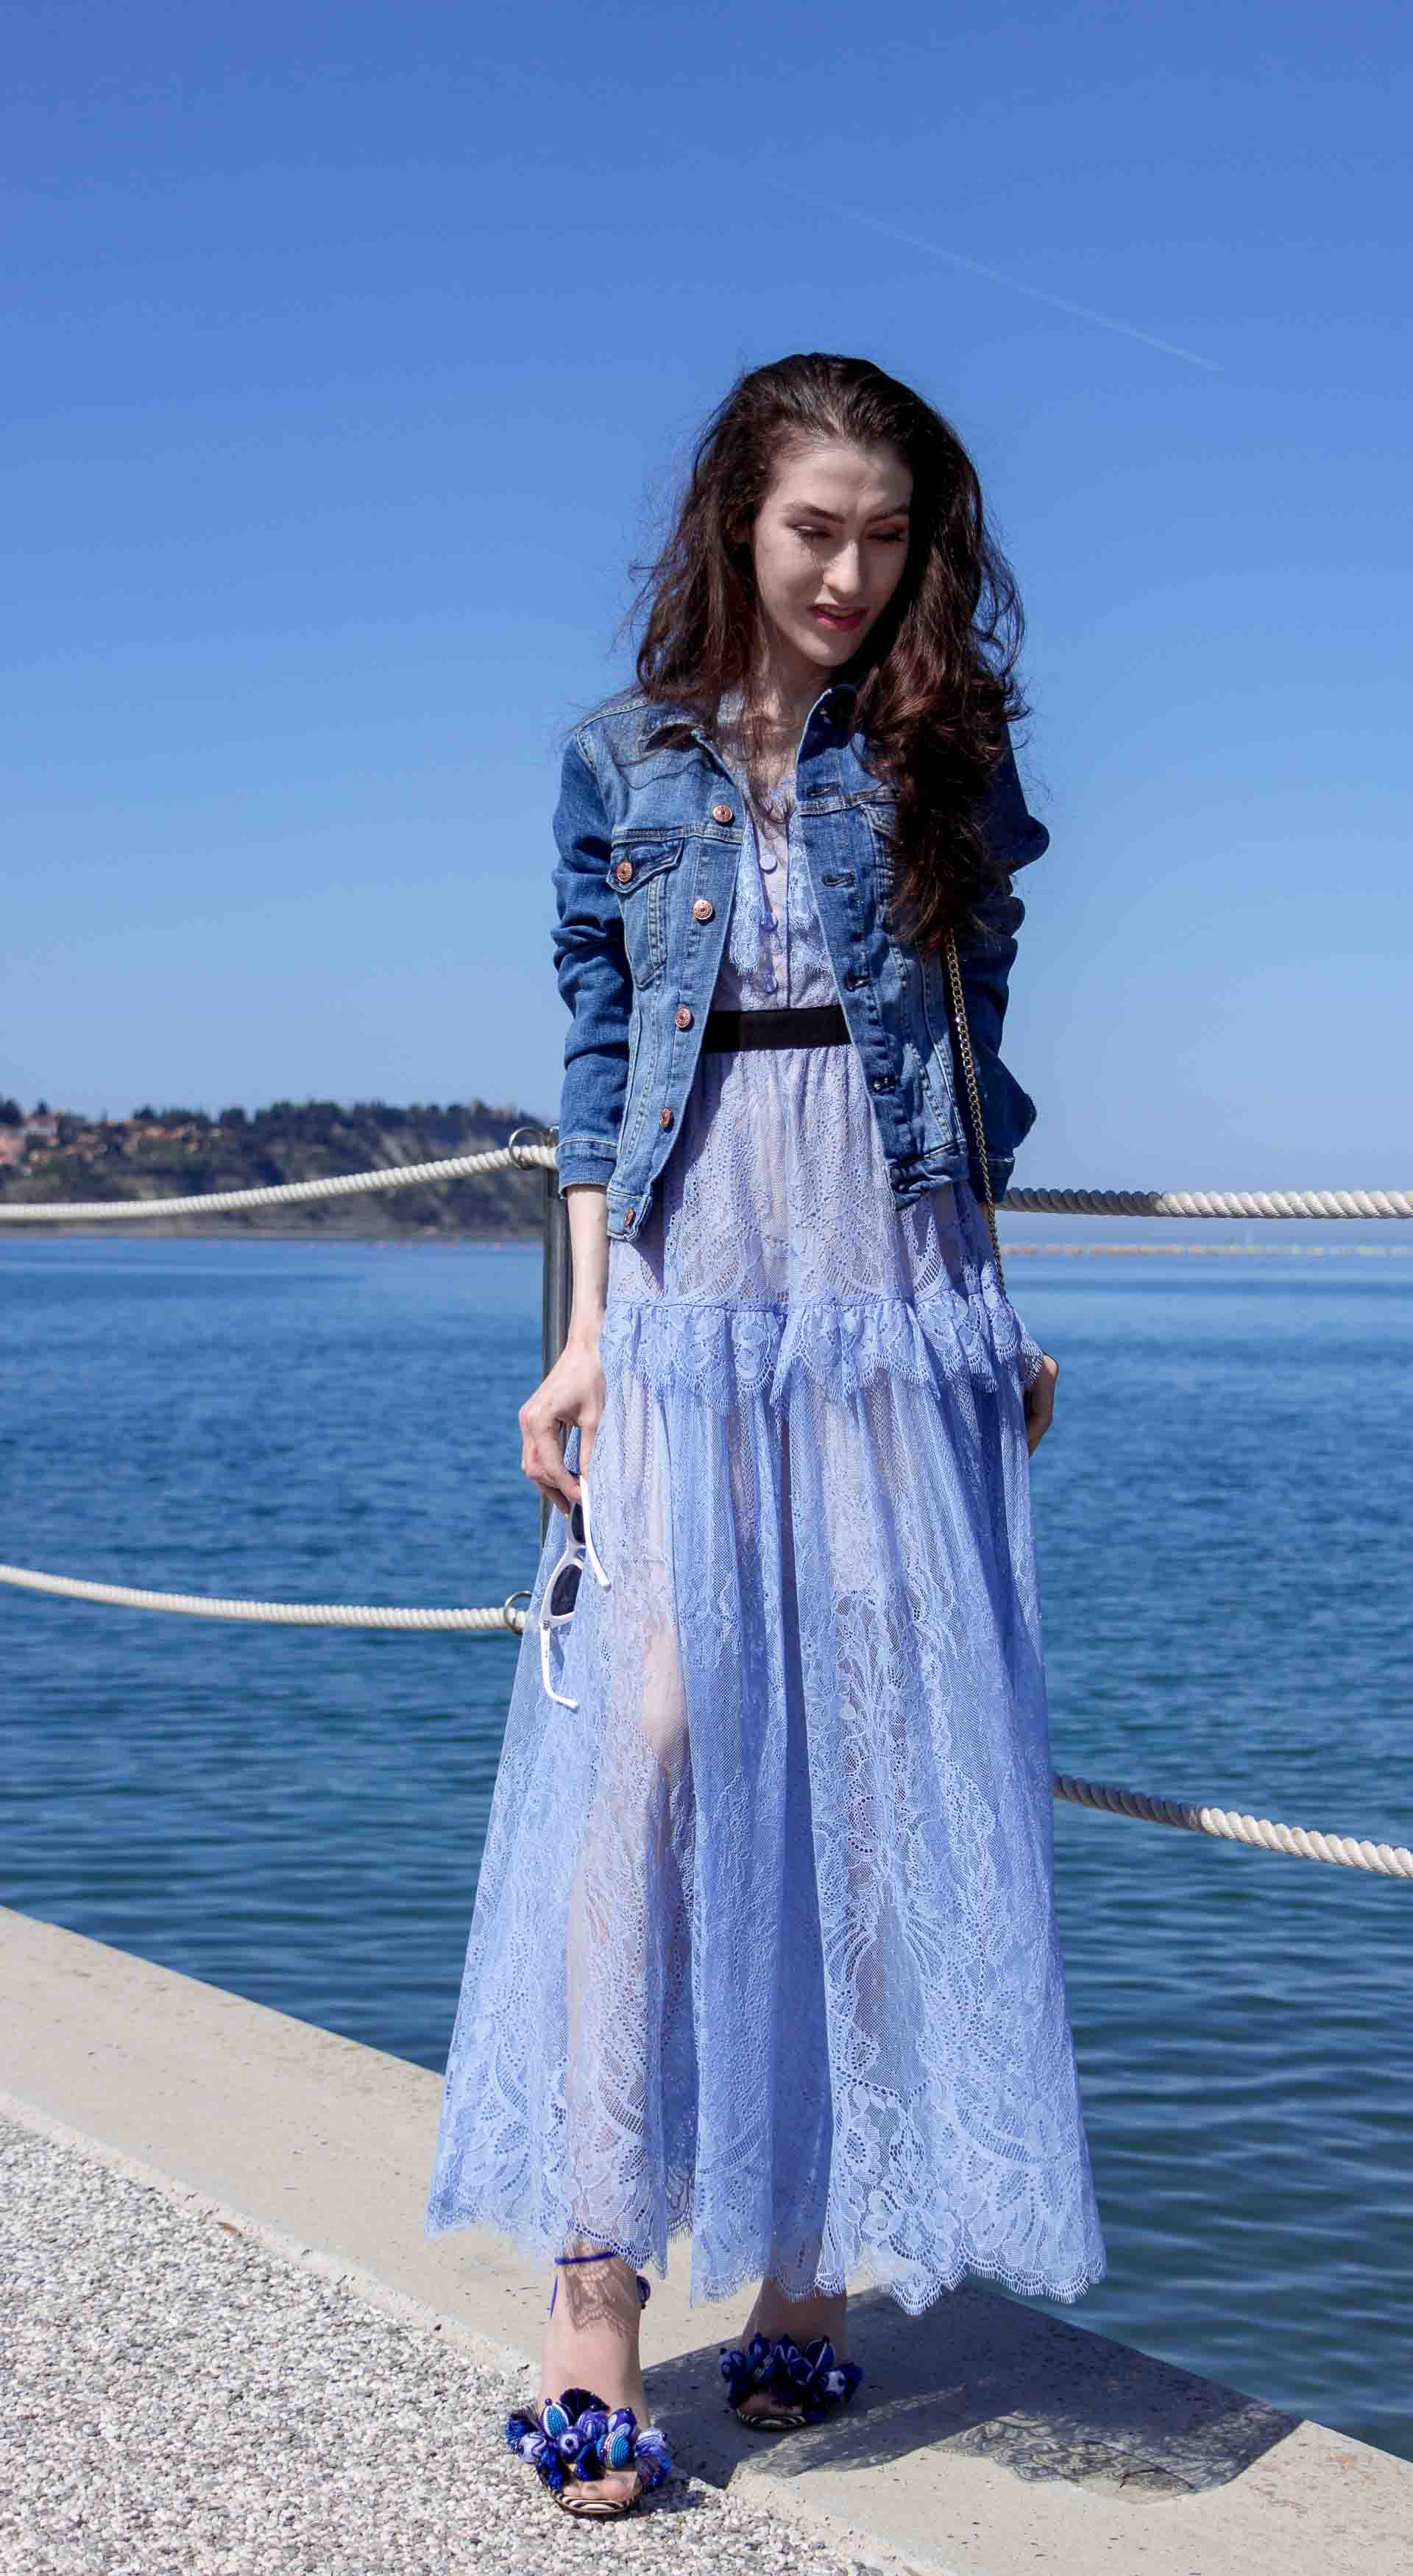 Veronika Lipar Fashion Blogger of Brunette from Wall Street wearing blue off the shoulder midi lace dress from Self-Portrait, H&M blue denim jacket, white chain shoulder bag, Aquazzura blue pom pom tassels sandals, white Lolita cat-eye sunglasses for romantic summer date by the sea